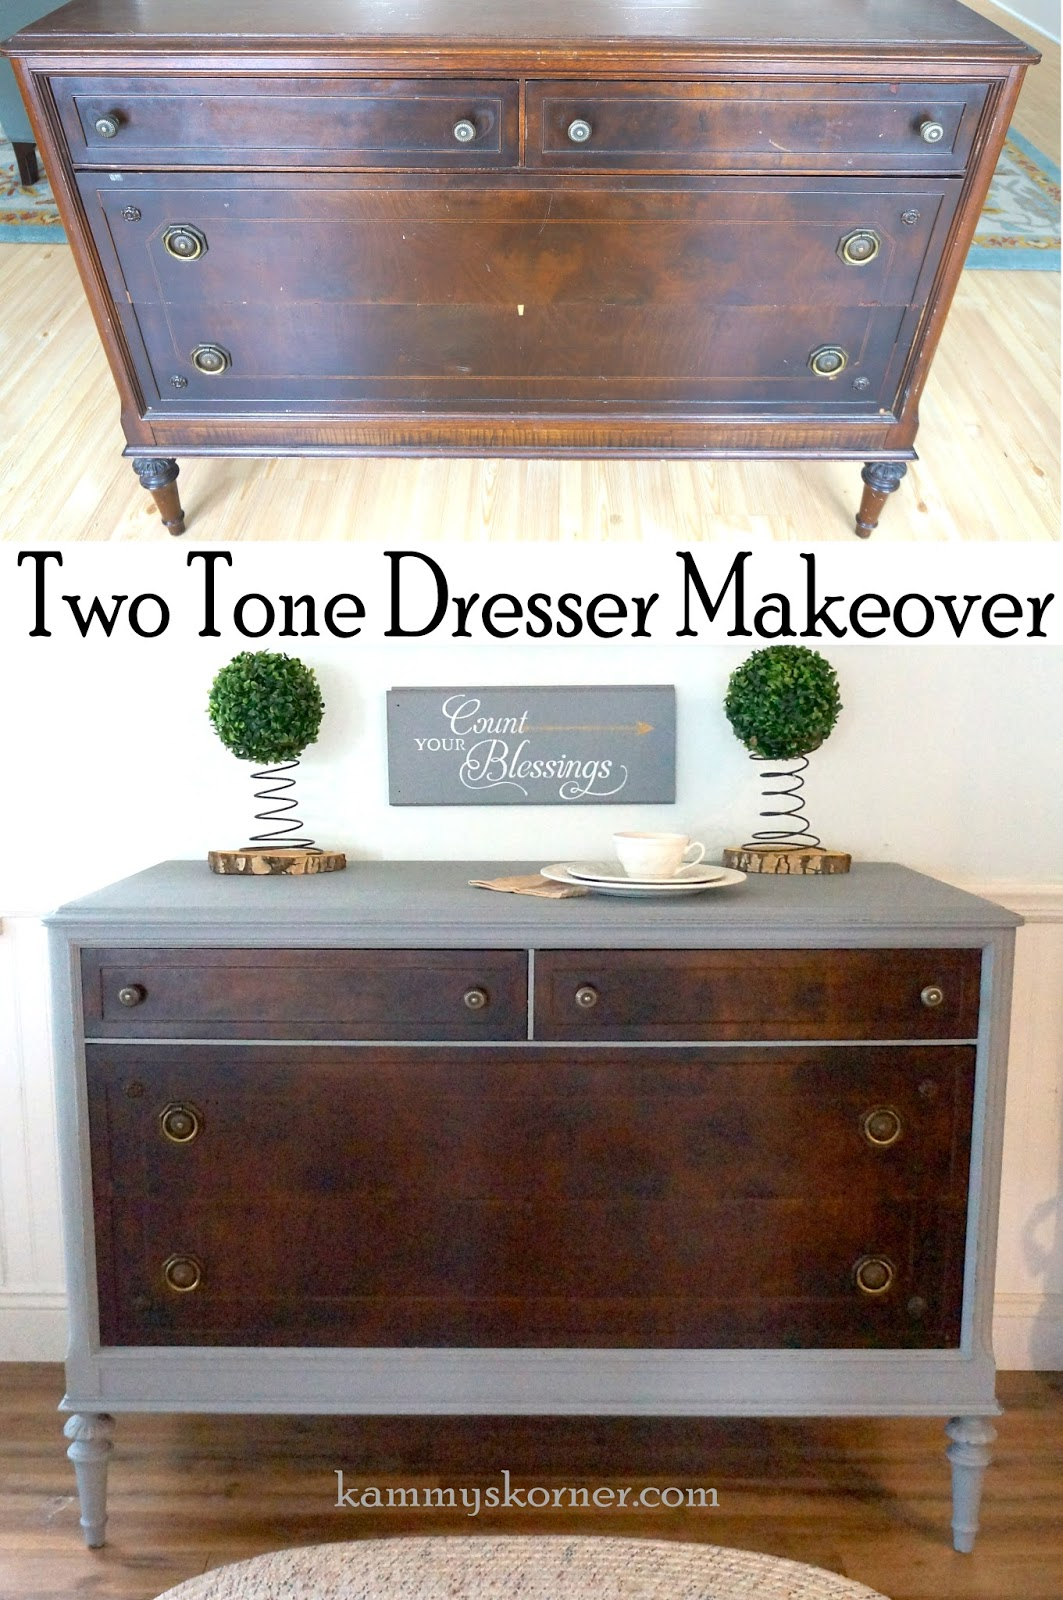 Two Tone Painted Furniture Shabby Chic Kammys Korner Tried Car Wax On Painted Dresser Makeover Kammys Korner Kammys Korner Tried Car Wax On Painted Dresser Makeover